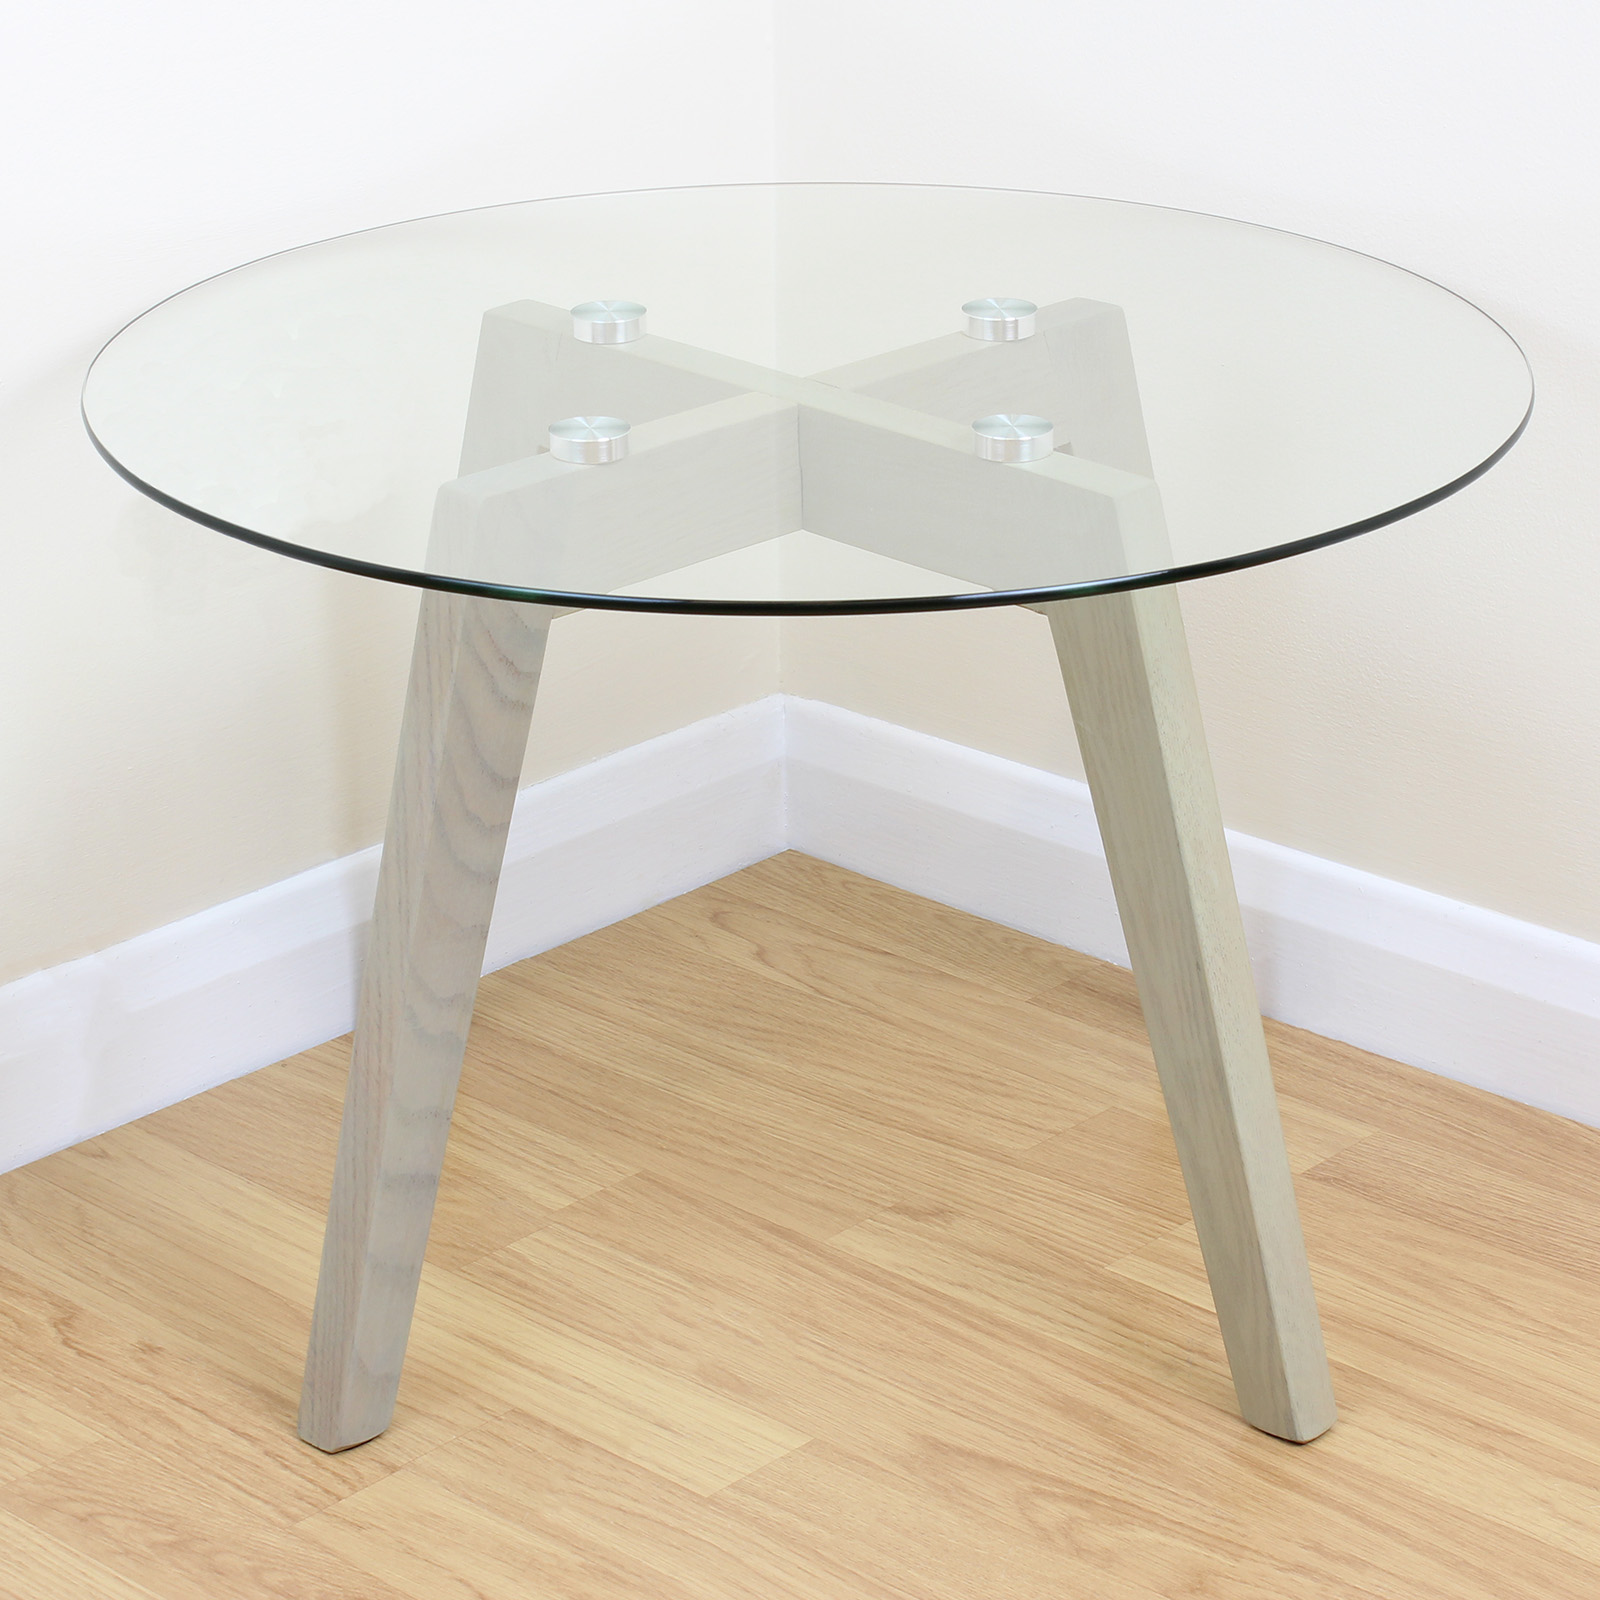 Limed oak clear glass modern round side end table coffee lamp stand solid wood ebay Clear coffee table